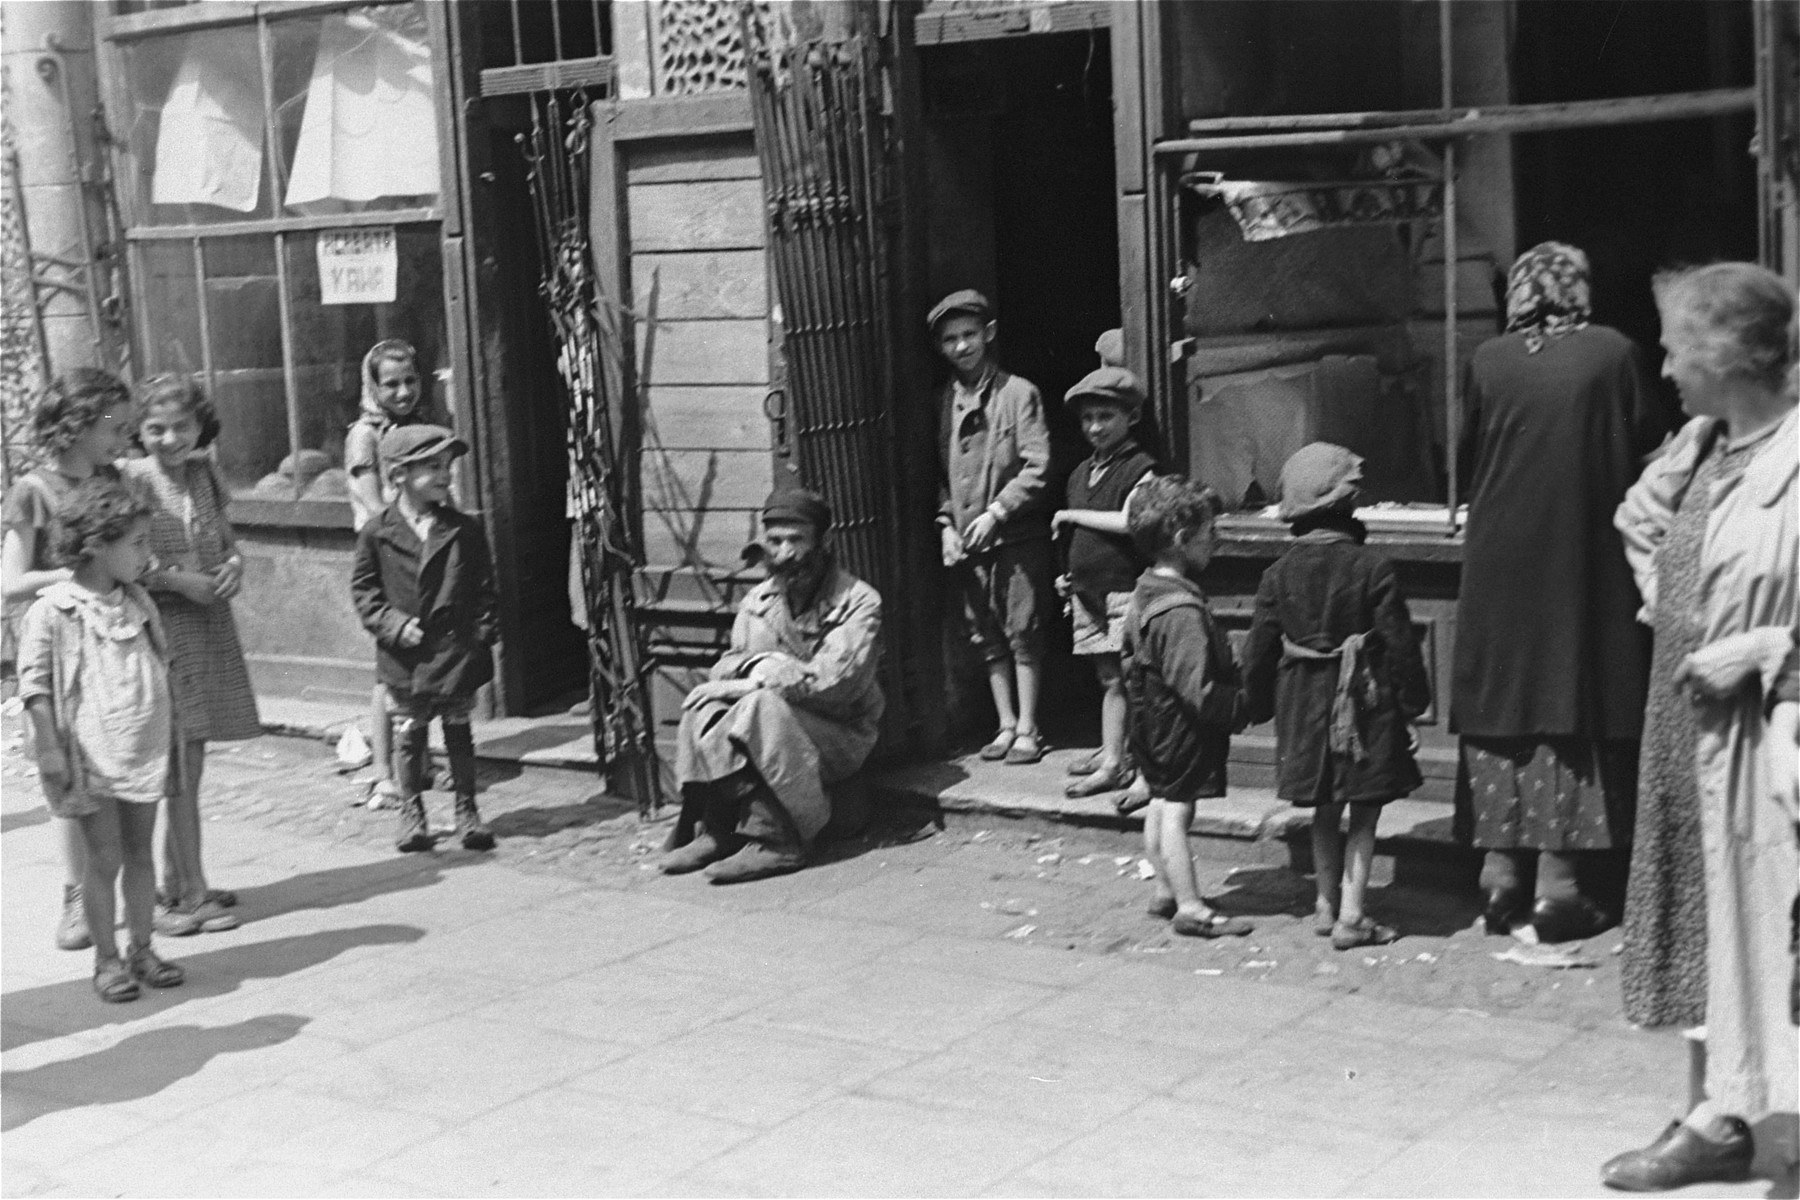 A group of Jews stands outside a shop whose windows were broken during the German invasion.  Due to a lack of materials, broken windows and doors could not be replaced.  While goods were still available, some proprietors built iron fences to protect their shops.